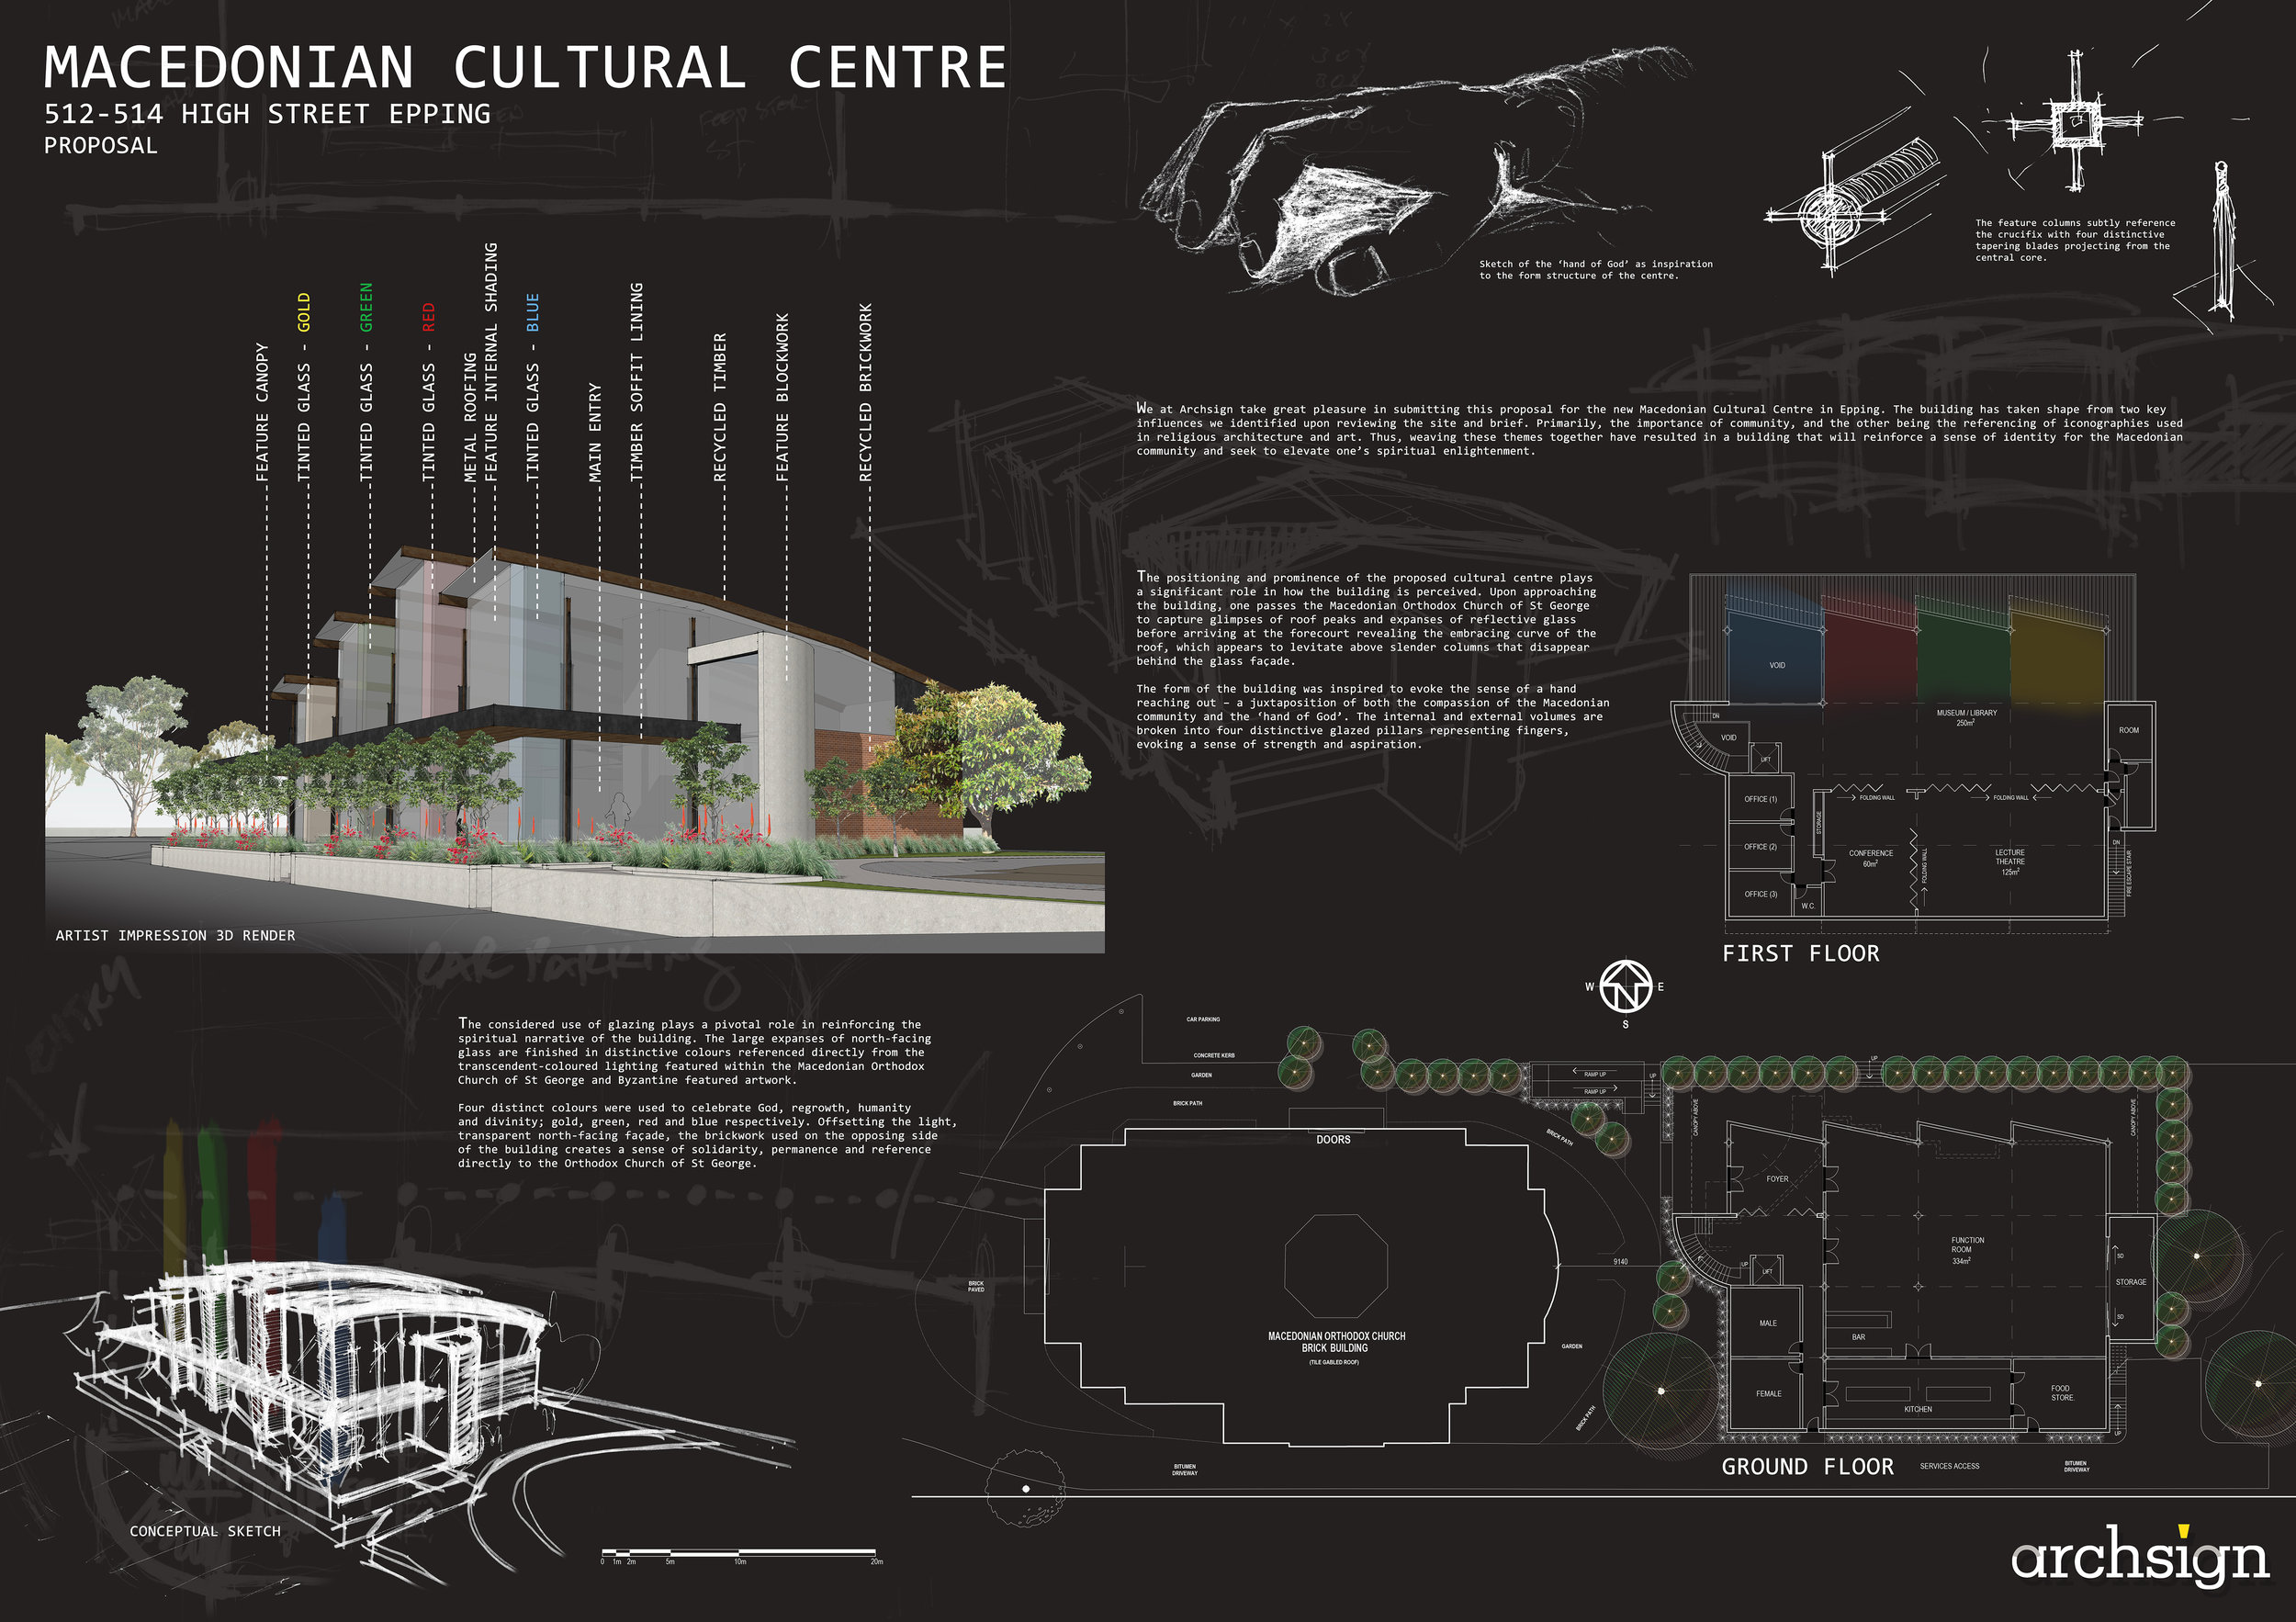 Design Proposal - Macedonian Cultural Center.